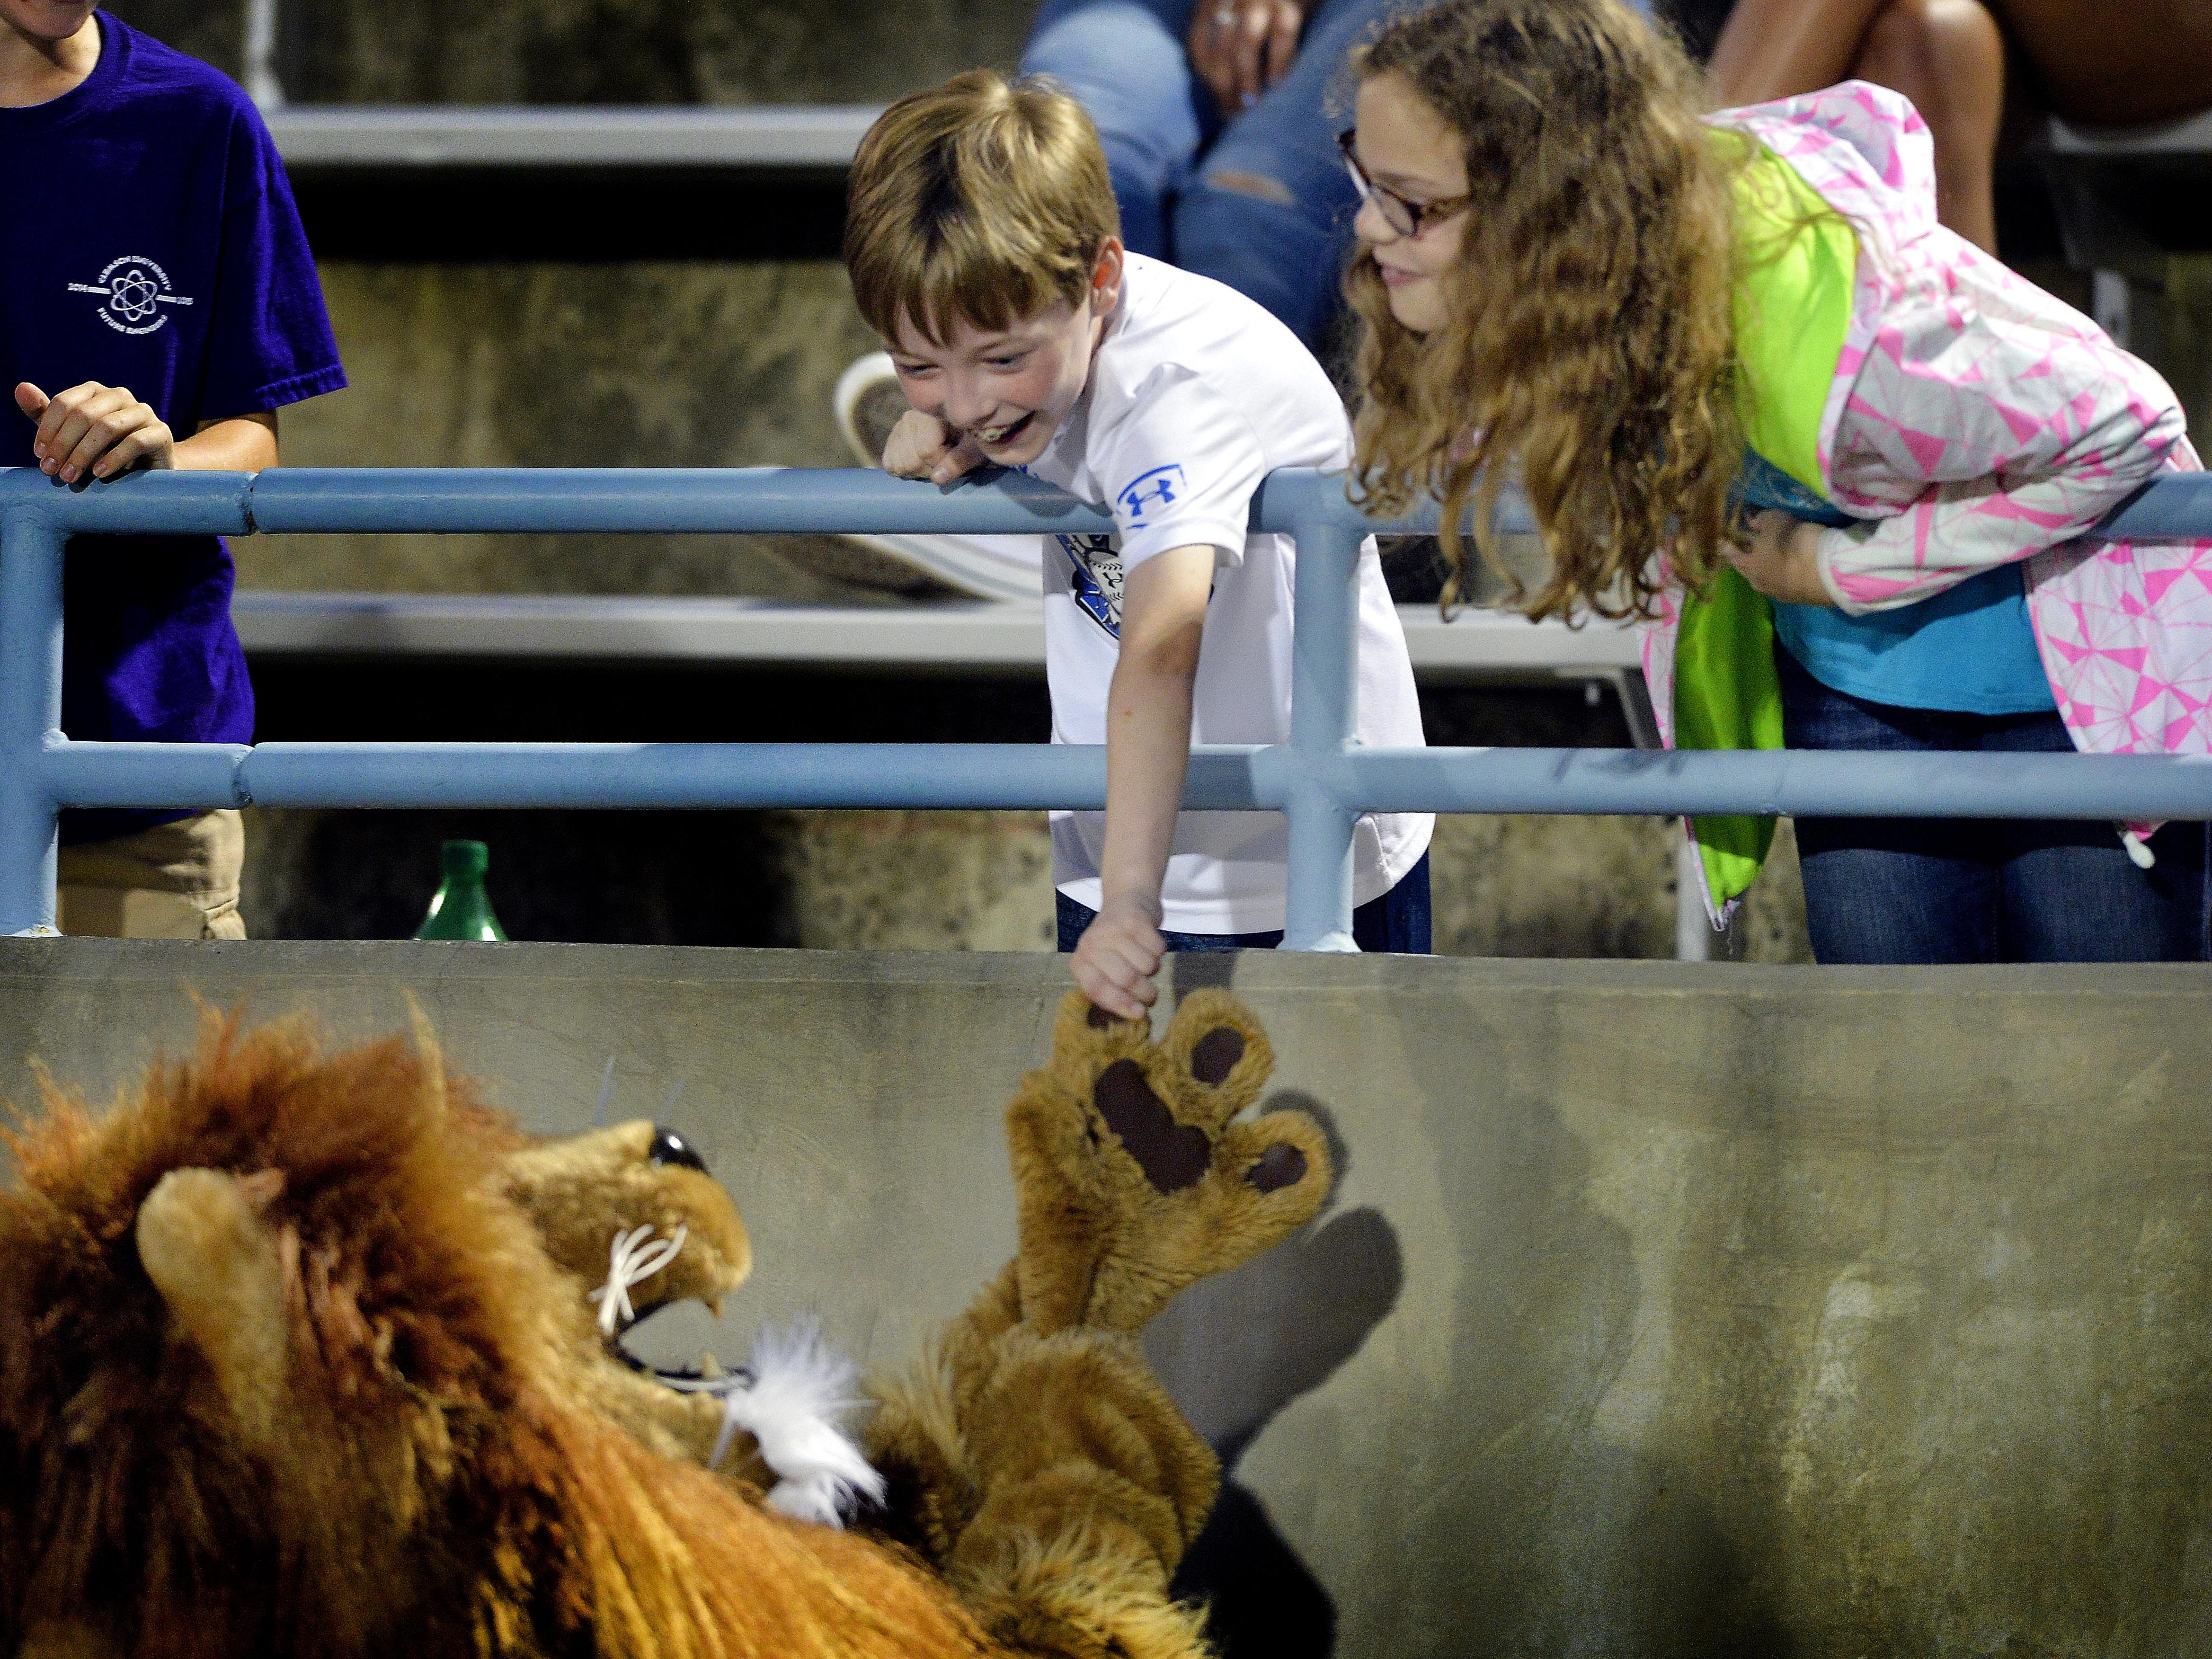 """Senior Ben Smith is the Daniel Lion mascot. """"It's fun seeing the little kids, how they react to you,"""" Smith said. """"I just try to make them happy."""""""